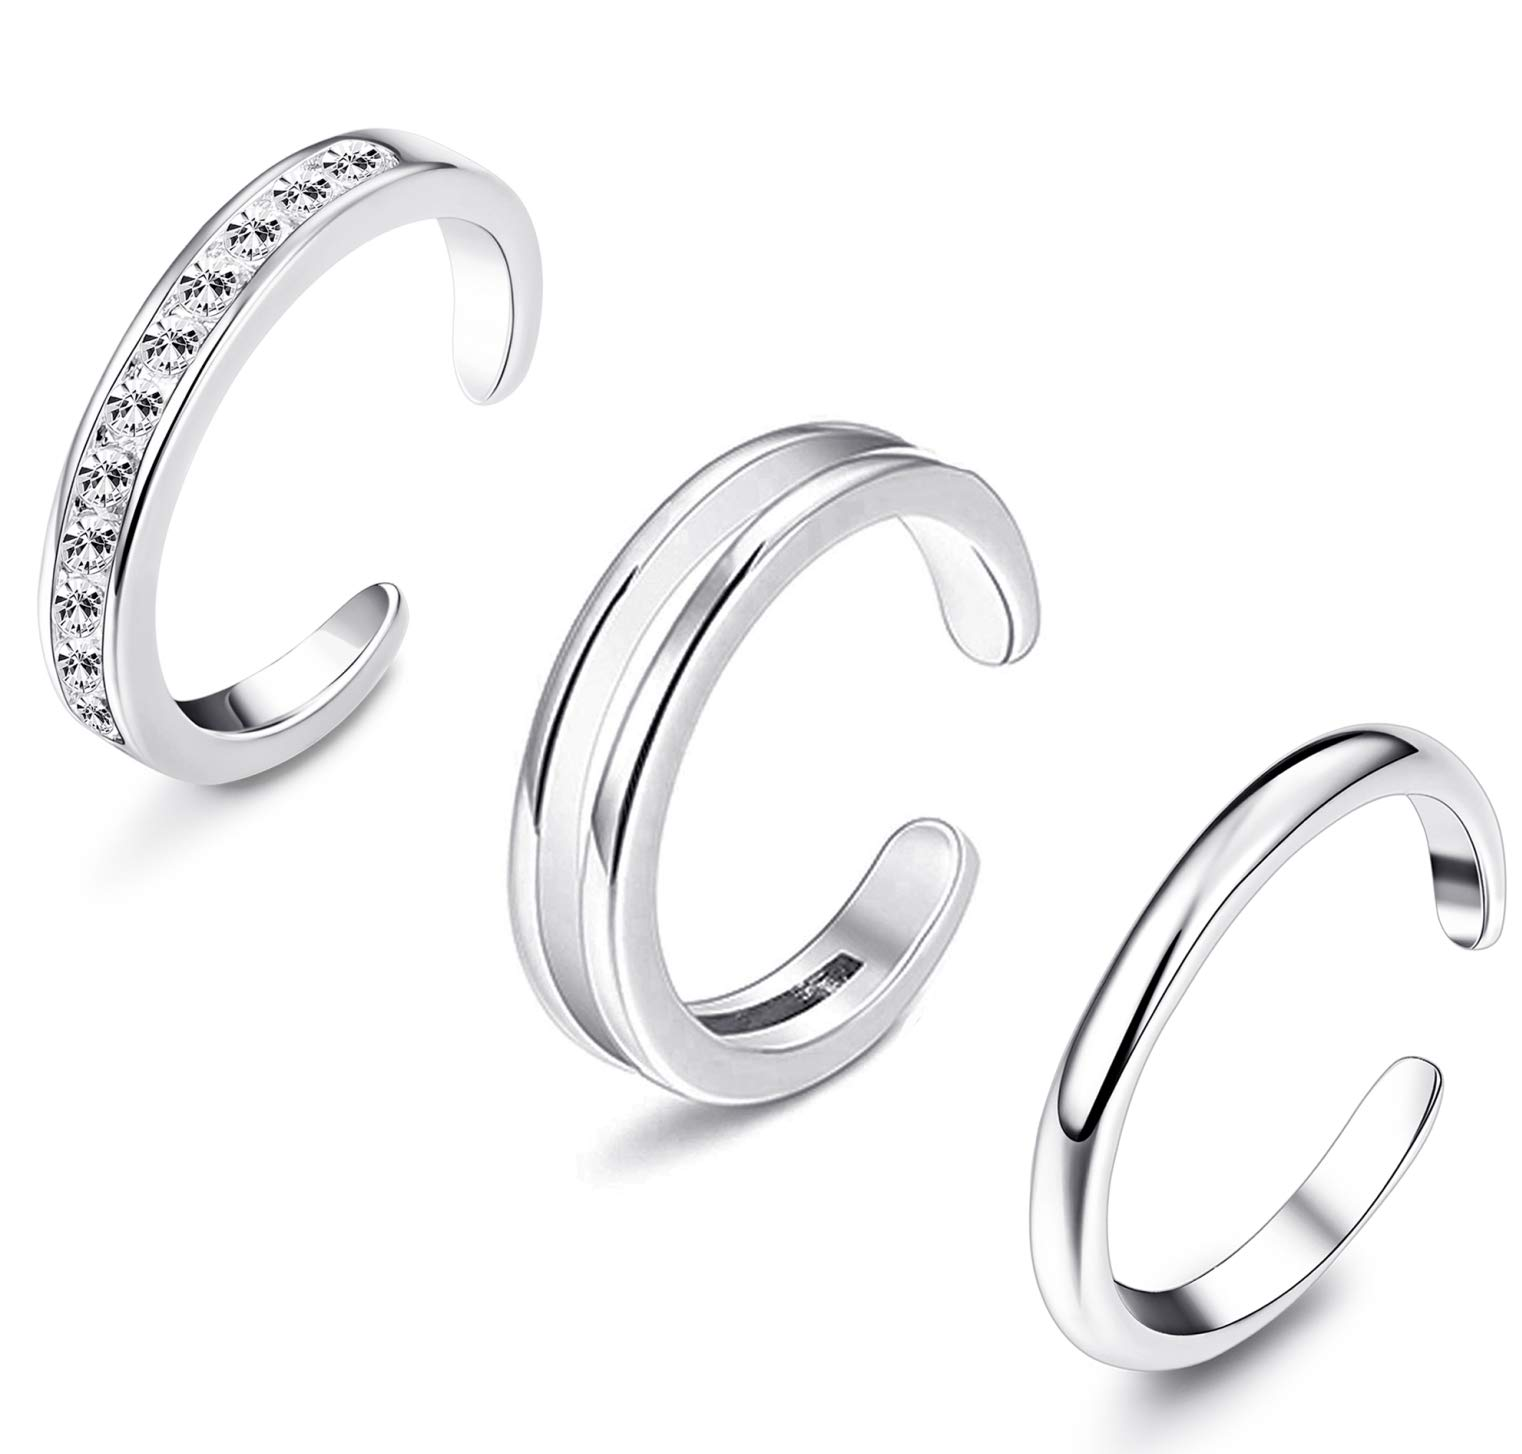 Sllaiss Sterling Silver Toe Rings for Women Hypoallergenic Adjustable Open Cuff Toe Ring Platinum Plating Cubic Zirconia Toe Rings Foot Jewelry